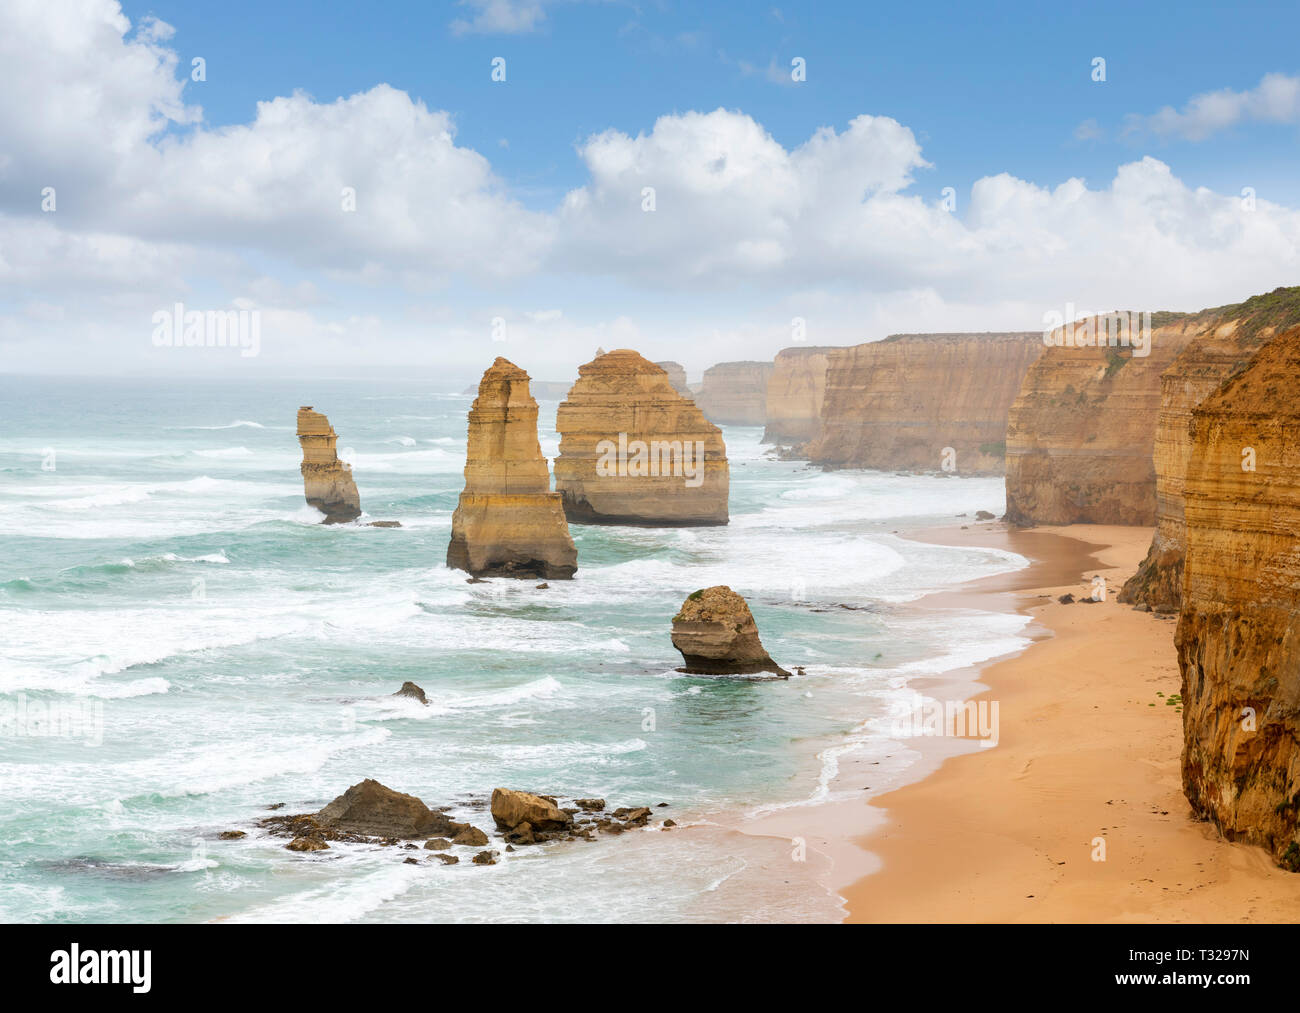 Twelve Apostles, Australia. View of some of the 12 Apostles from the viewpoint in Port Campbell National Park, Great Ocean Road, Victoria, Australia Stock Photo